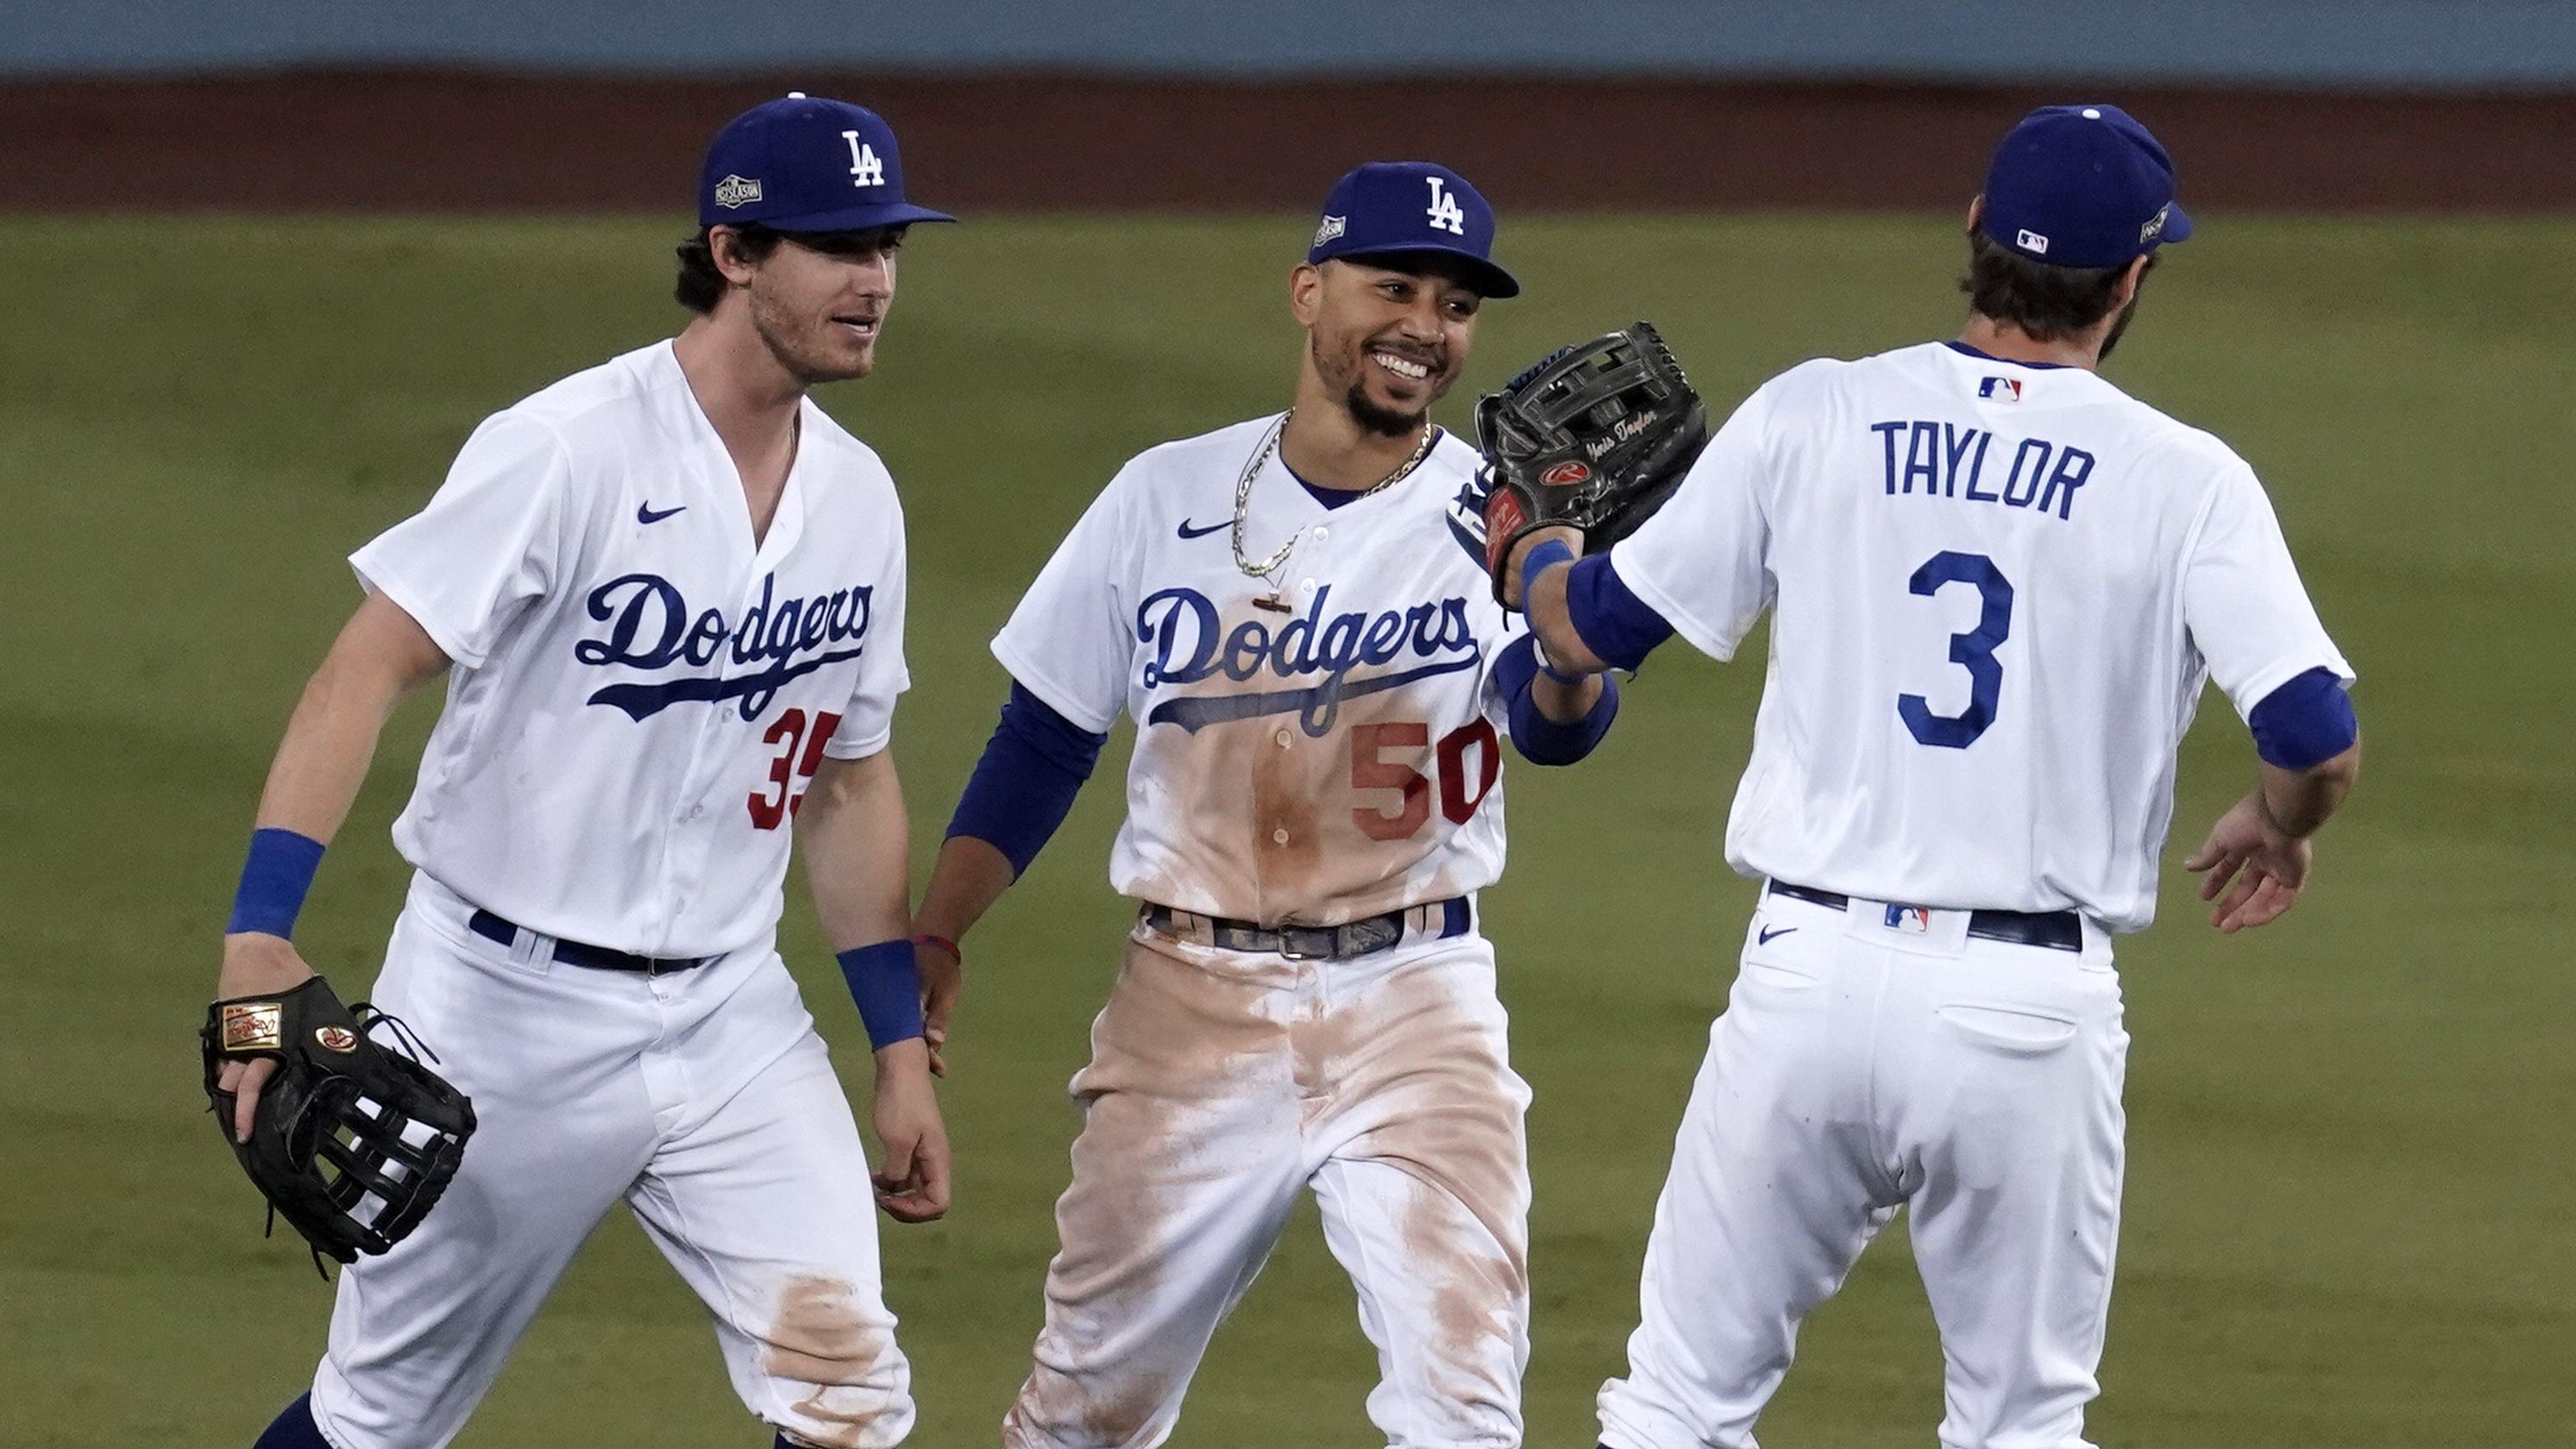 Dodgers win Game 1, Yankees sweep Indians on wild day